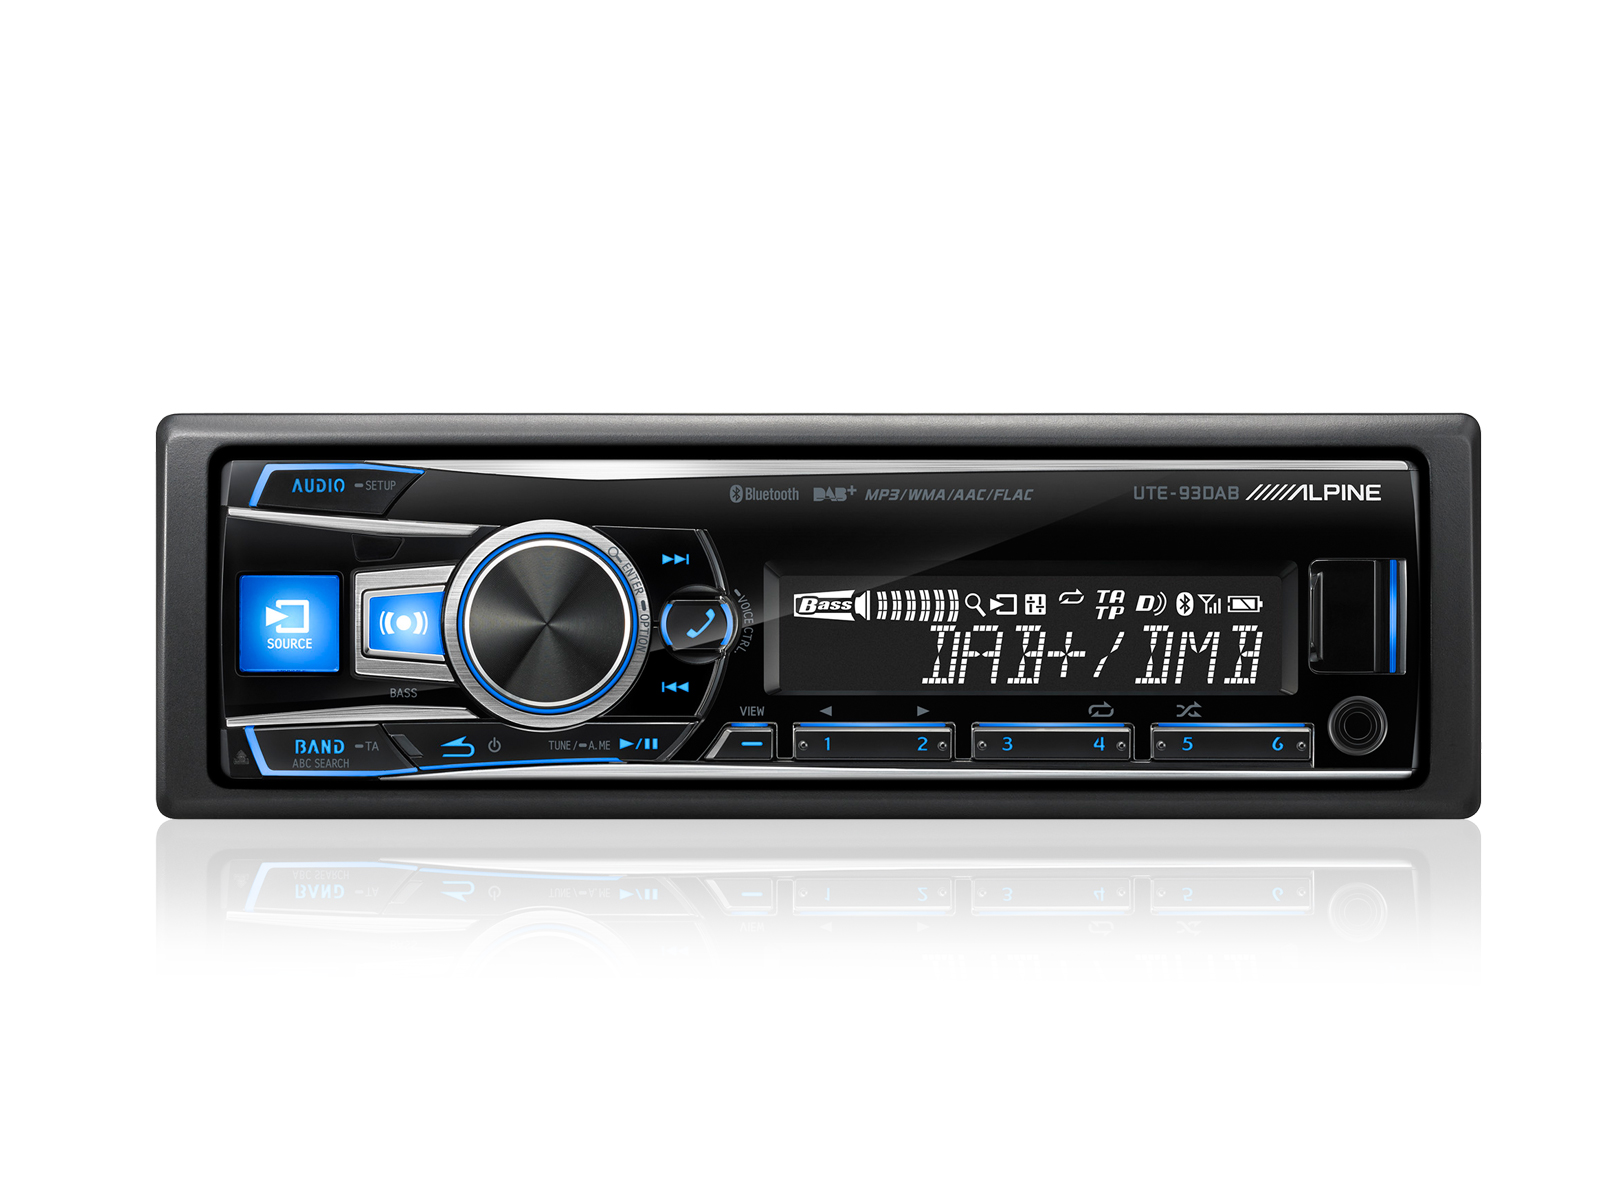 Alpine DAB+ Autoradio UTE-93DAB Bluetooth USB